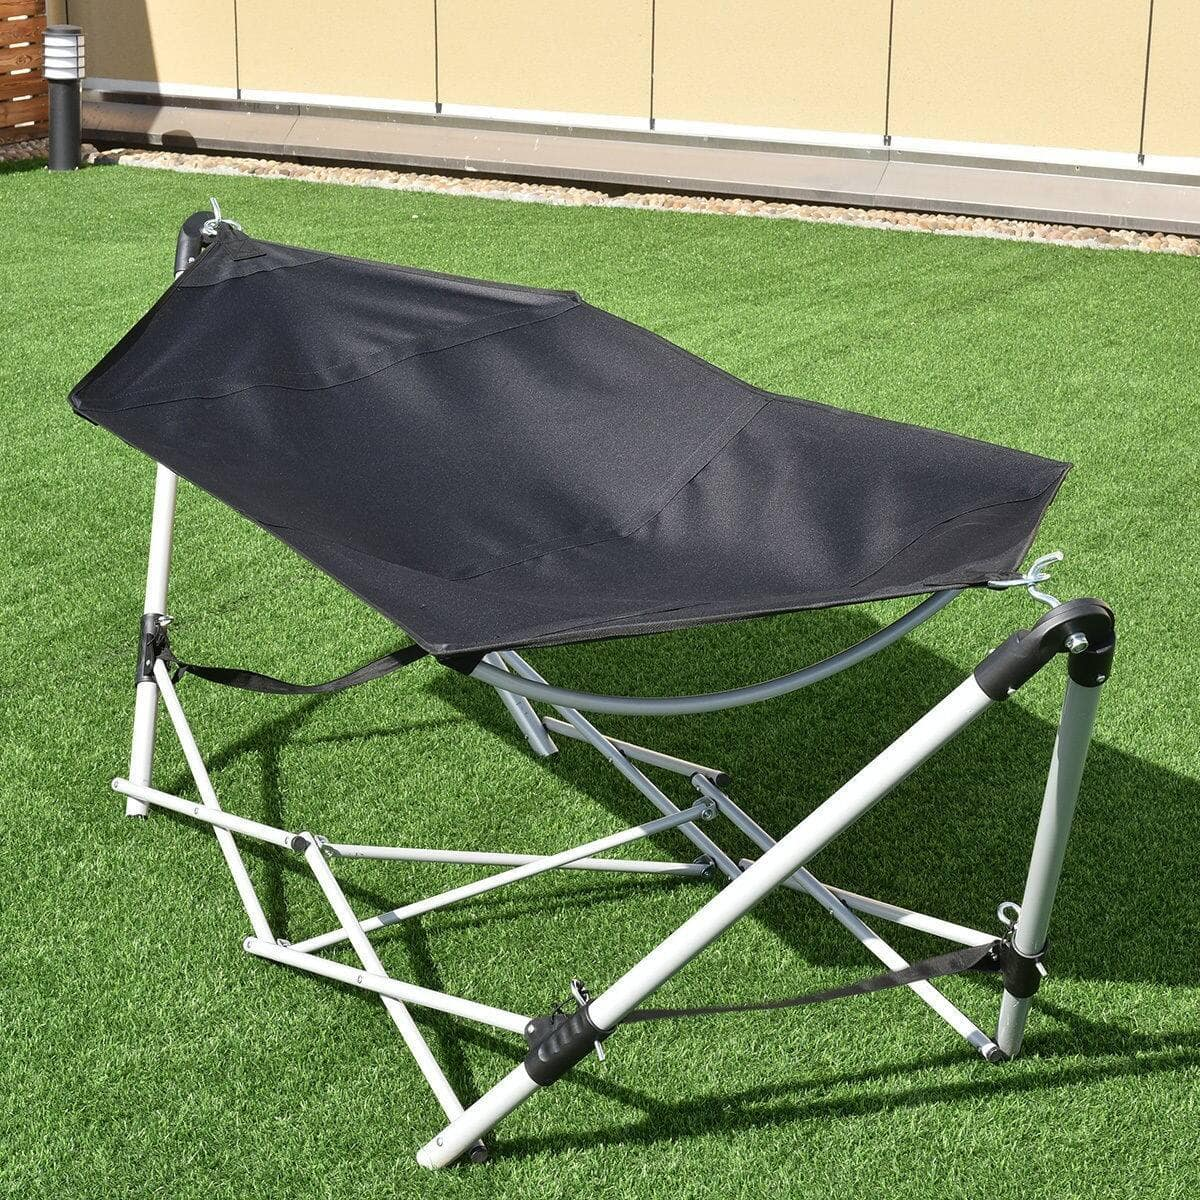 Costway Portable Folding Steel Frame Hammock with Bag for $51.95 + FS